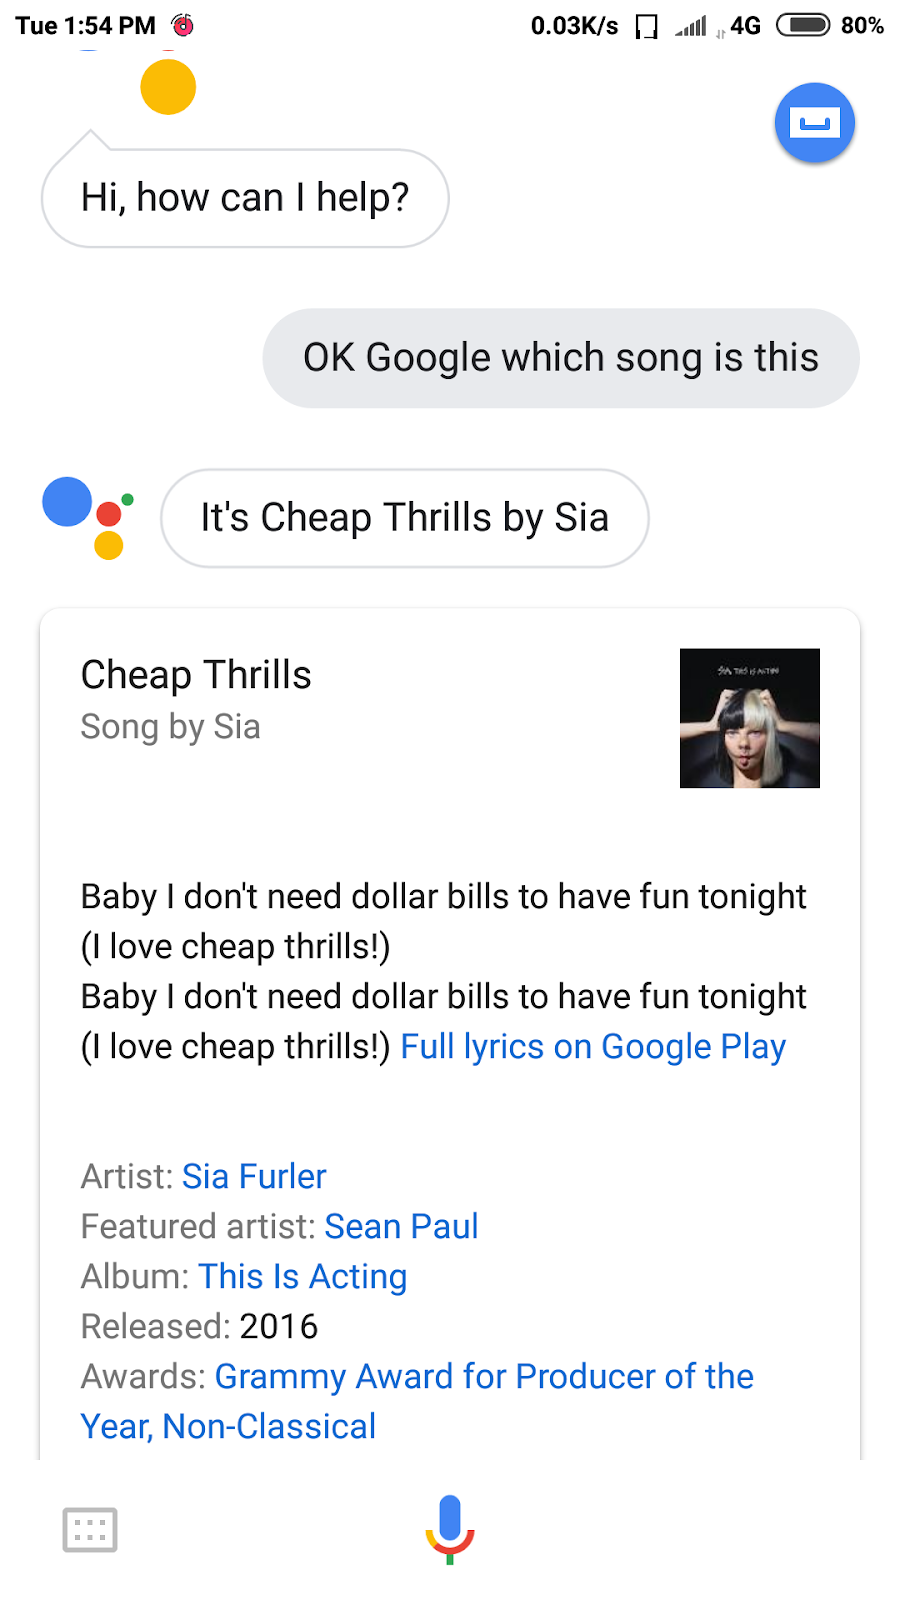 Identifying Song Name Using Google Assistance